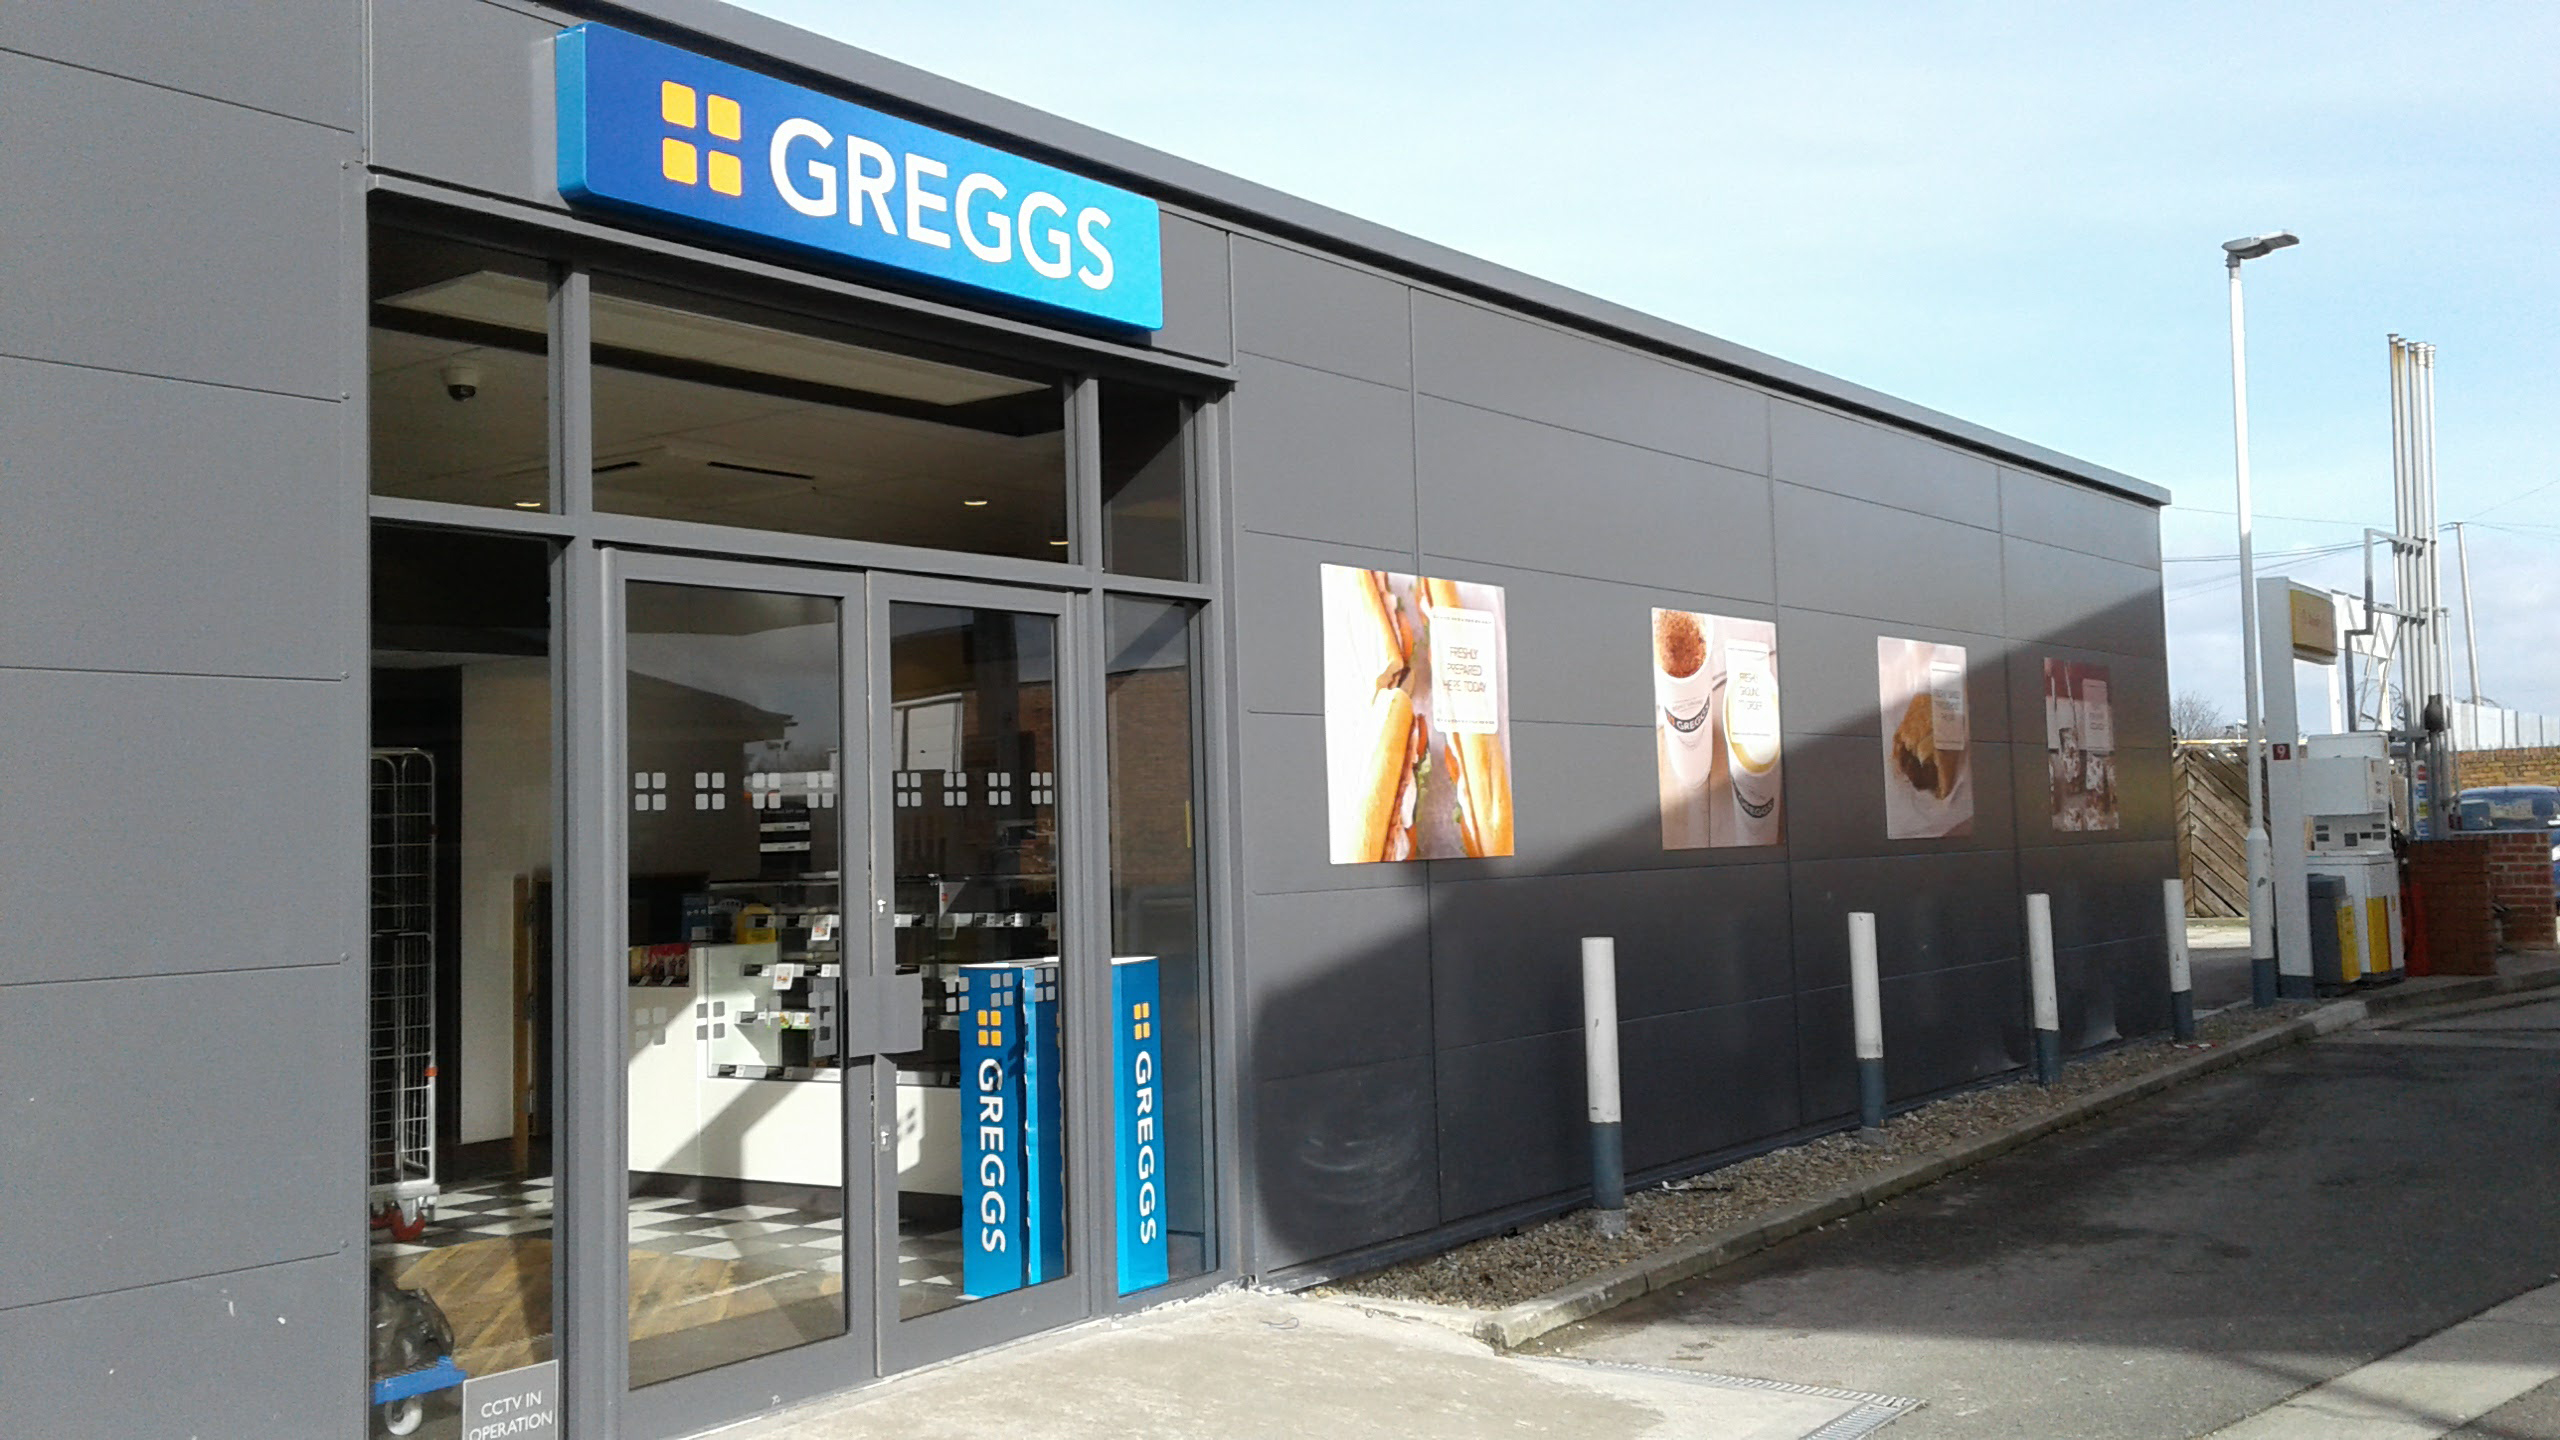 Greggs - Car Wash Conversions